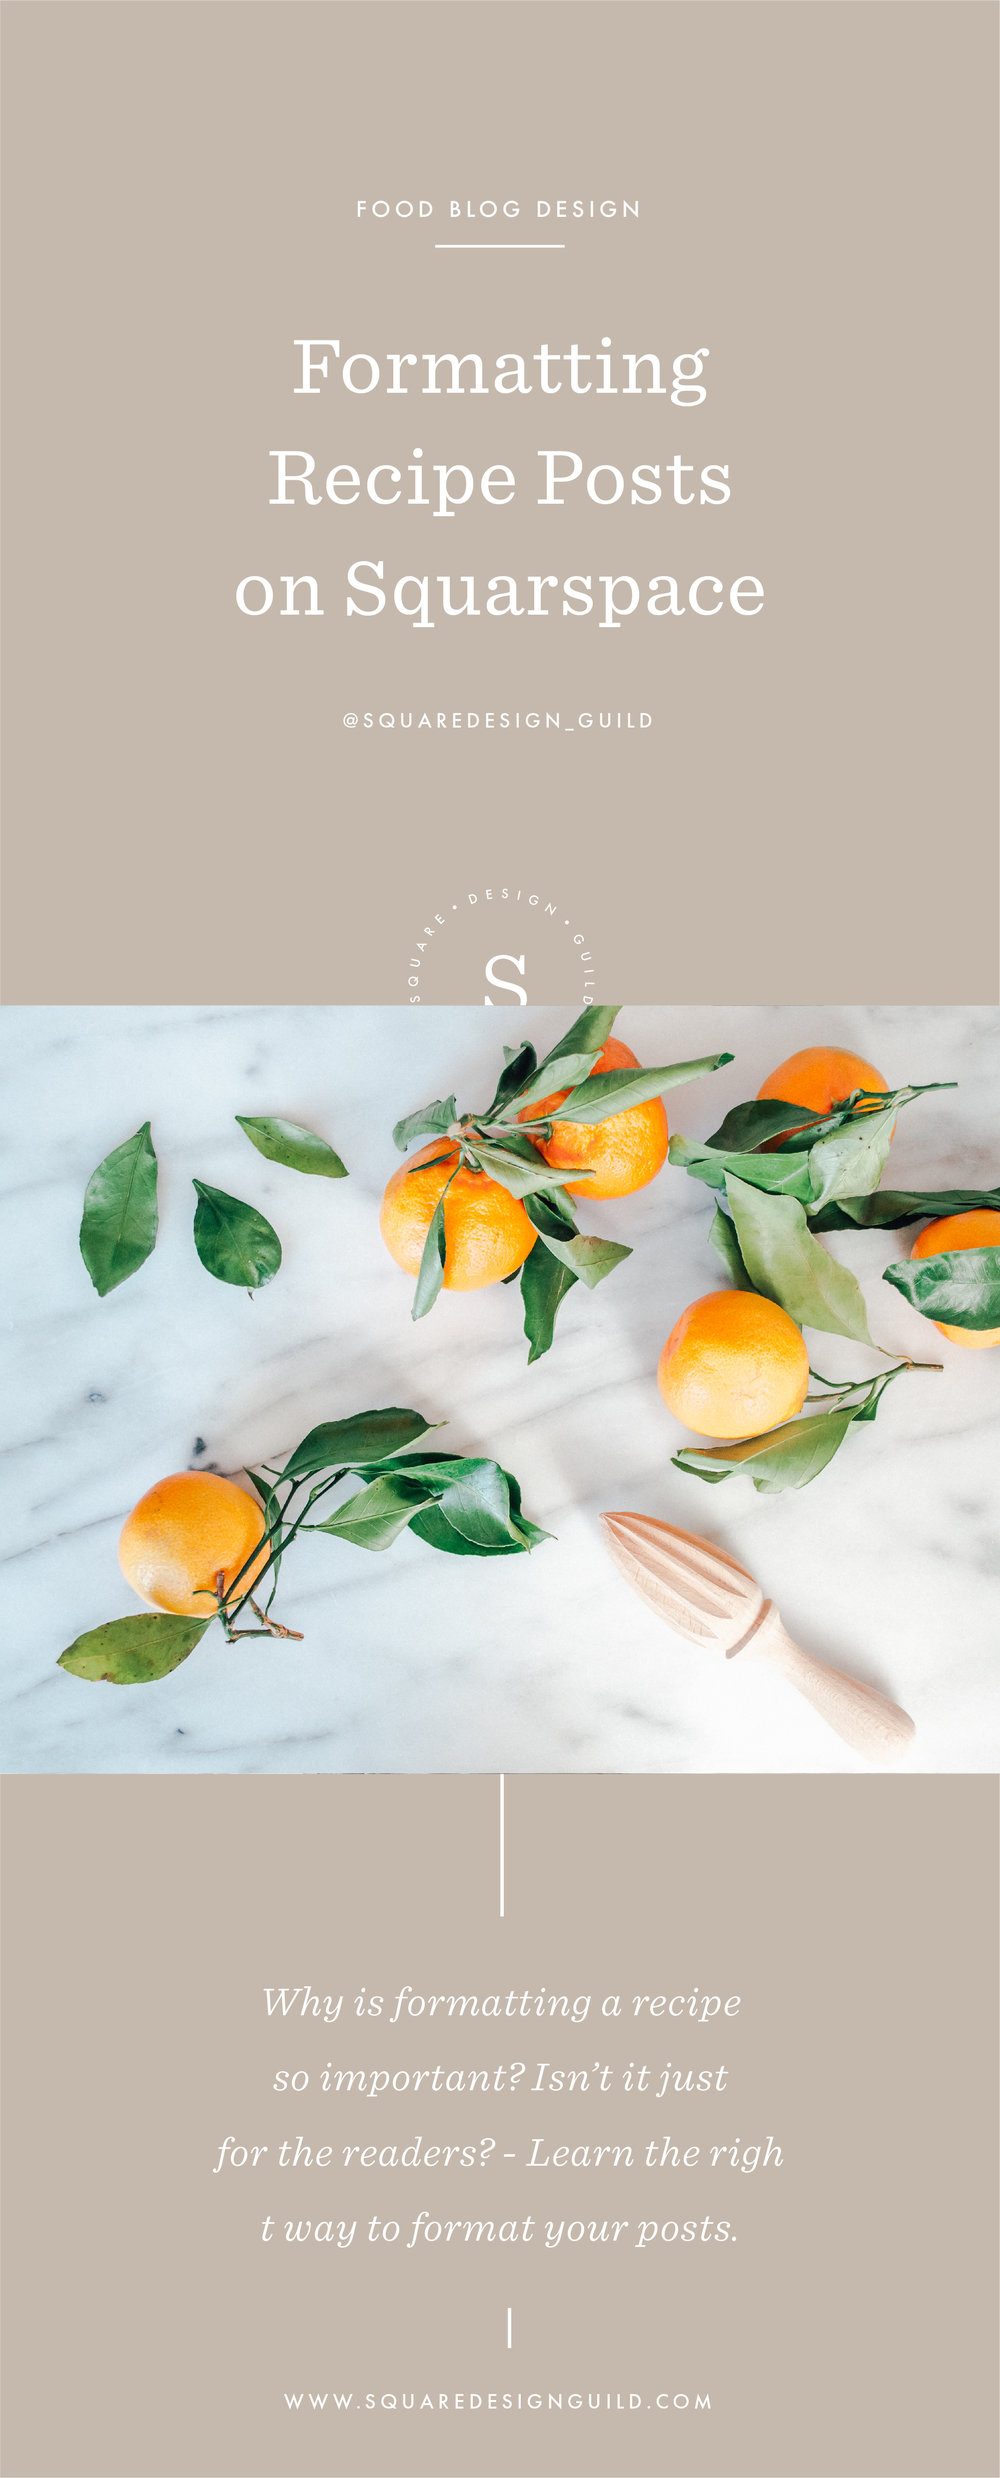 Recipe Post Formatting on Squarespace